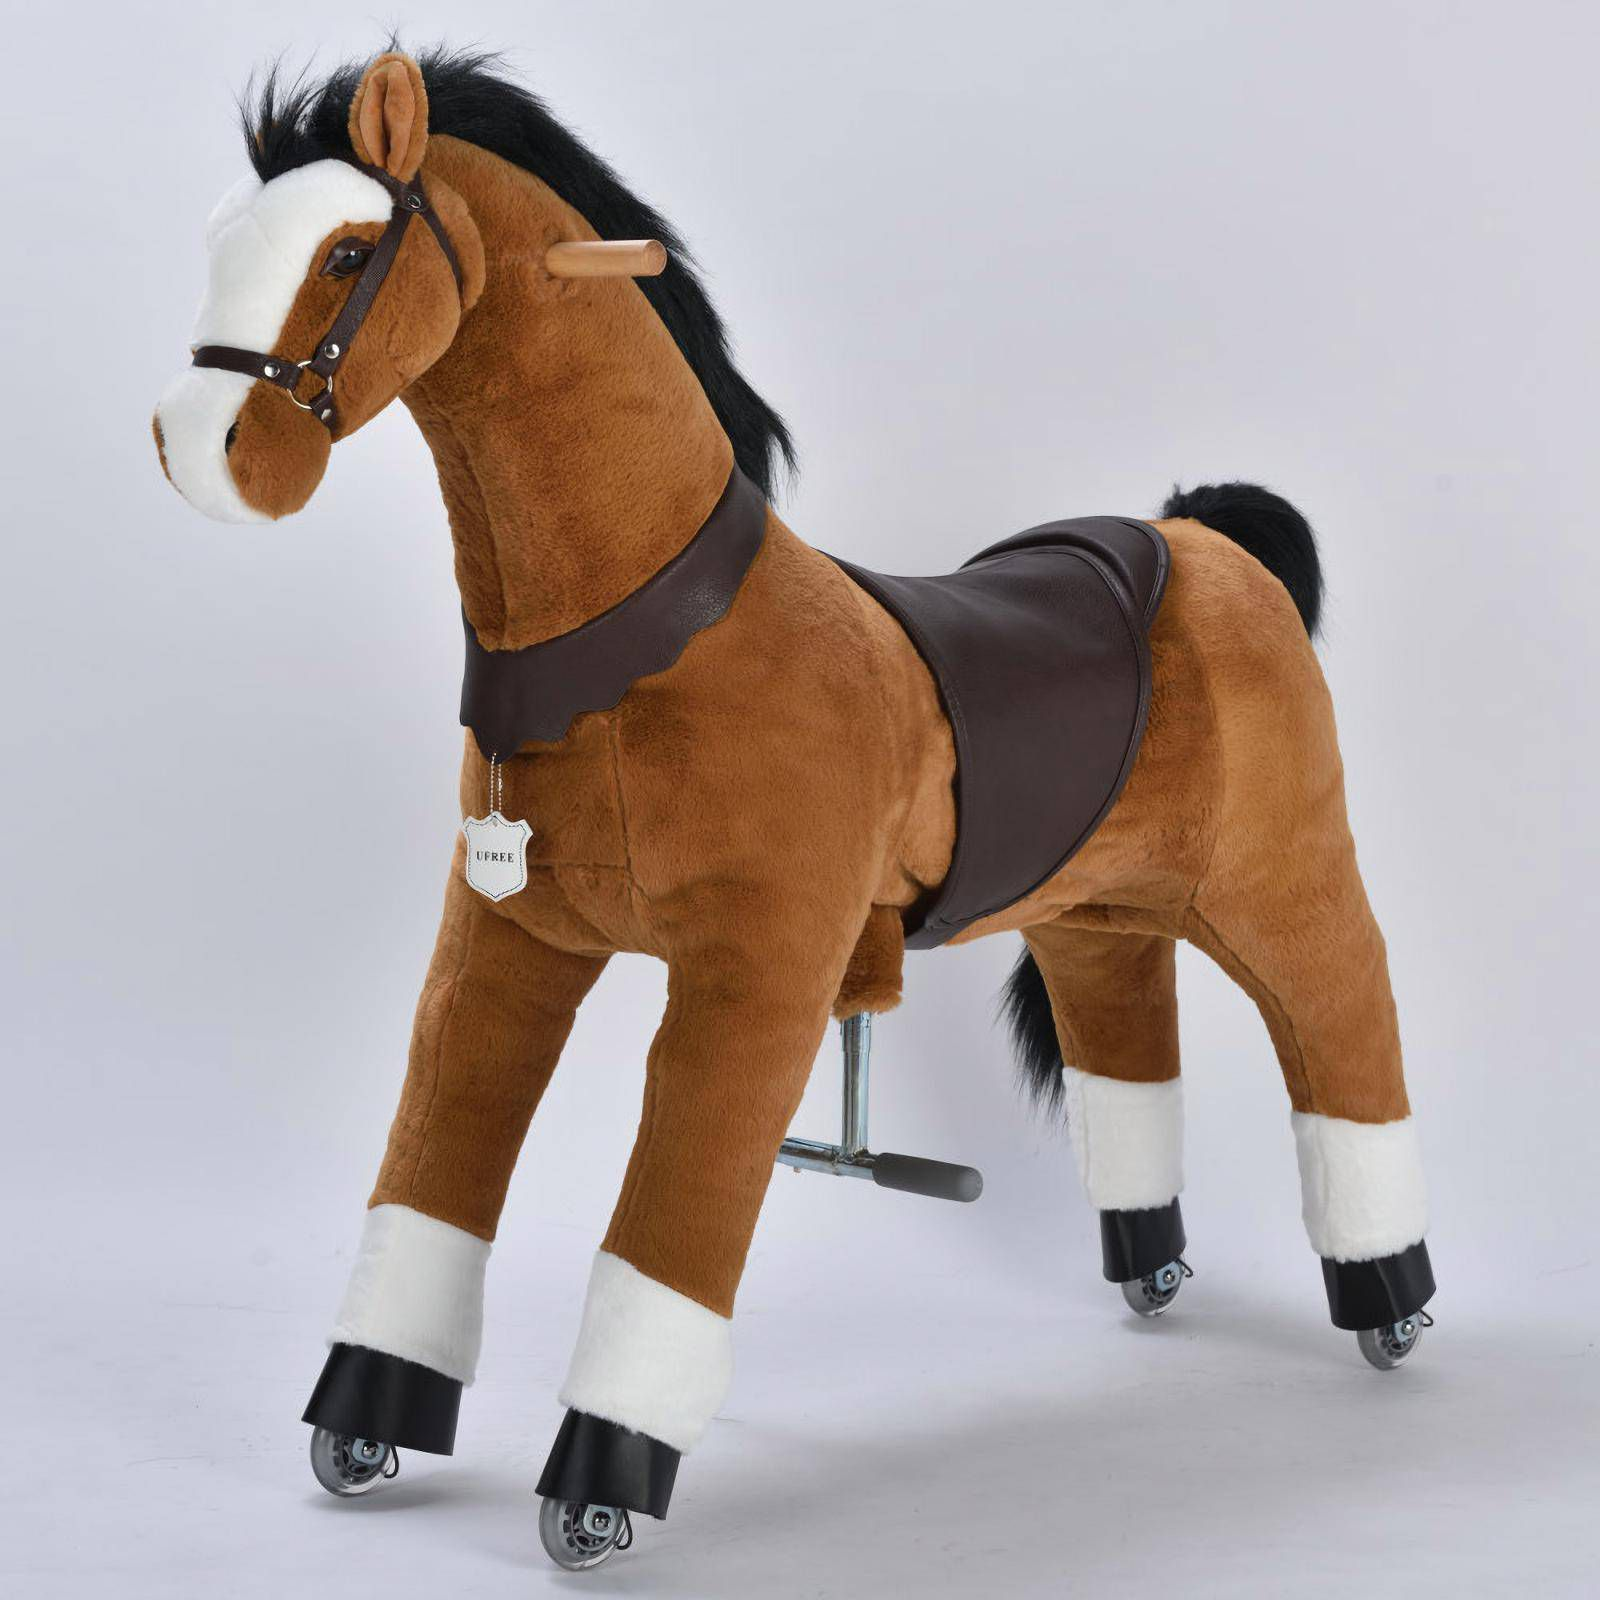 UFREE Large 44'' Ride-on Horse for Children 6 Years Old to Adult. (Black Mane and Tail)